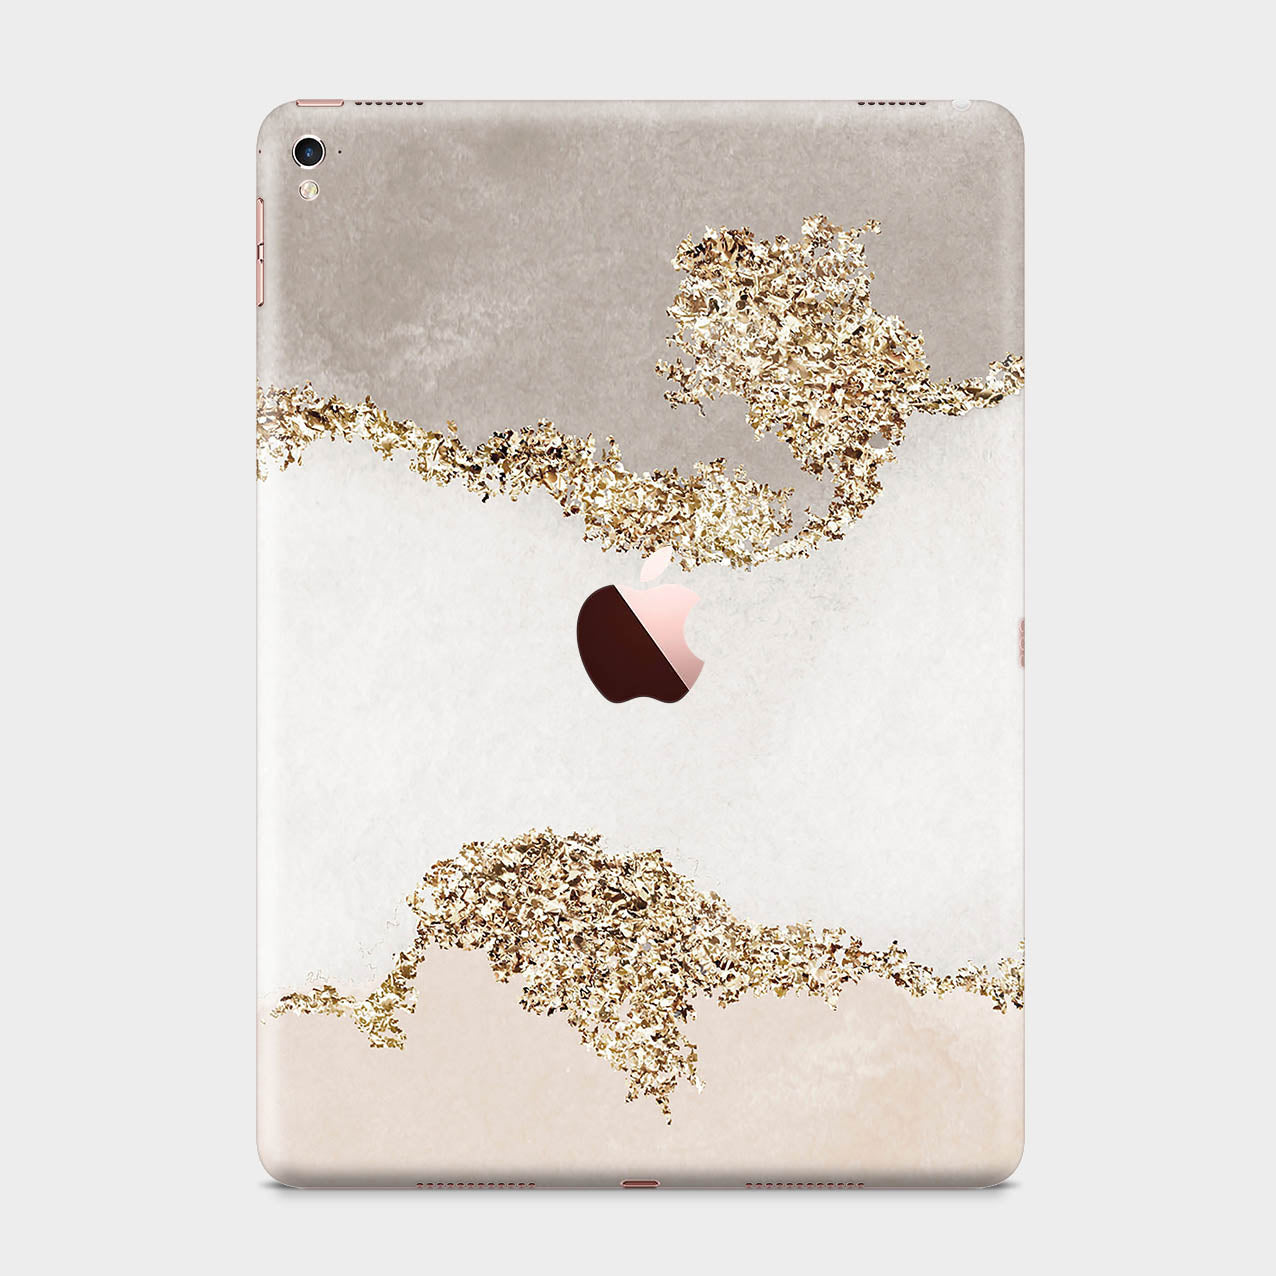 GOLDEN COAST iPad Pro 10.5 skins | Pigtou